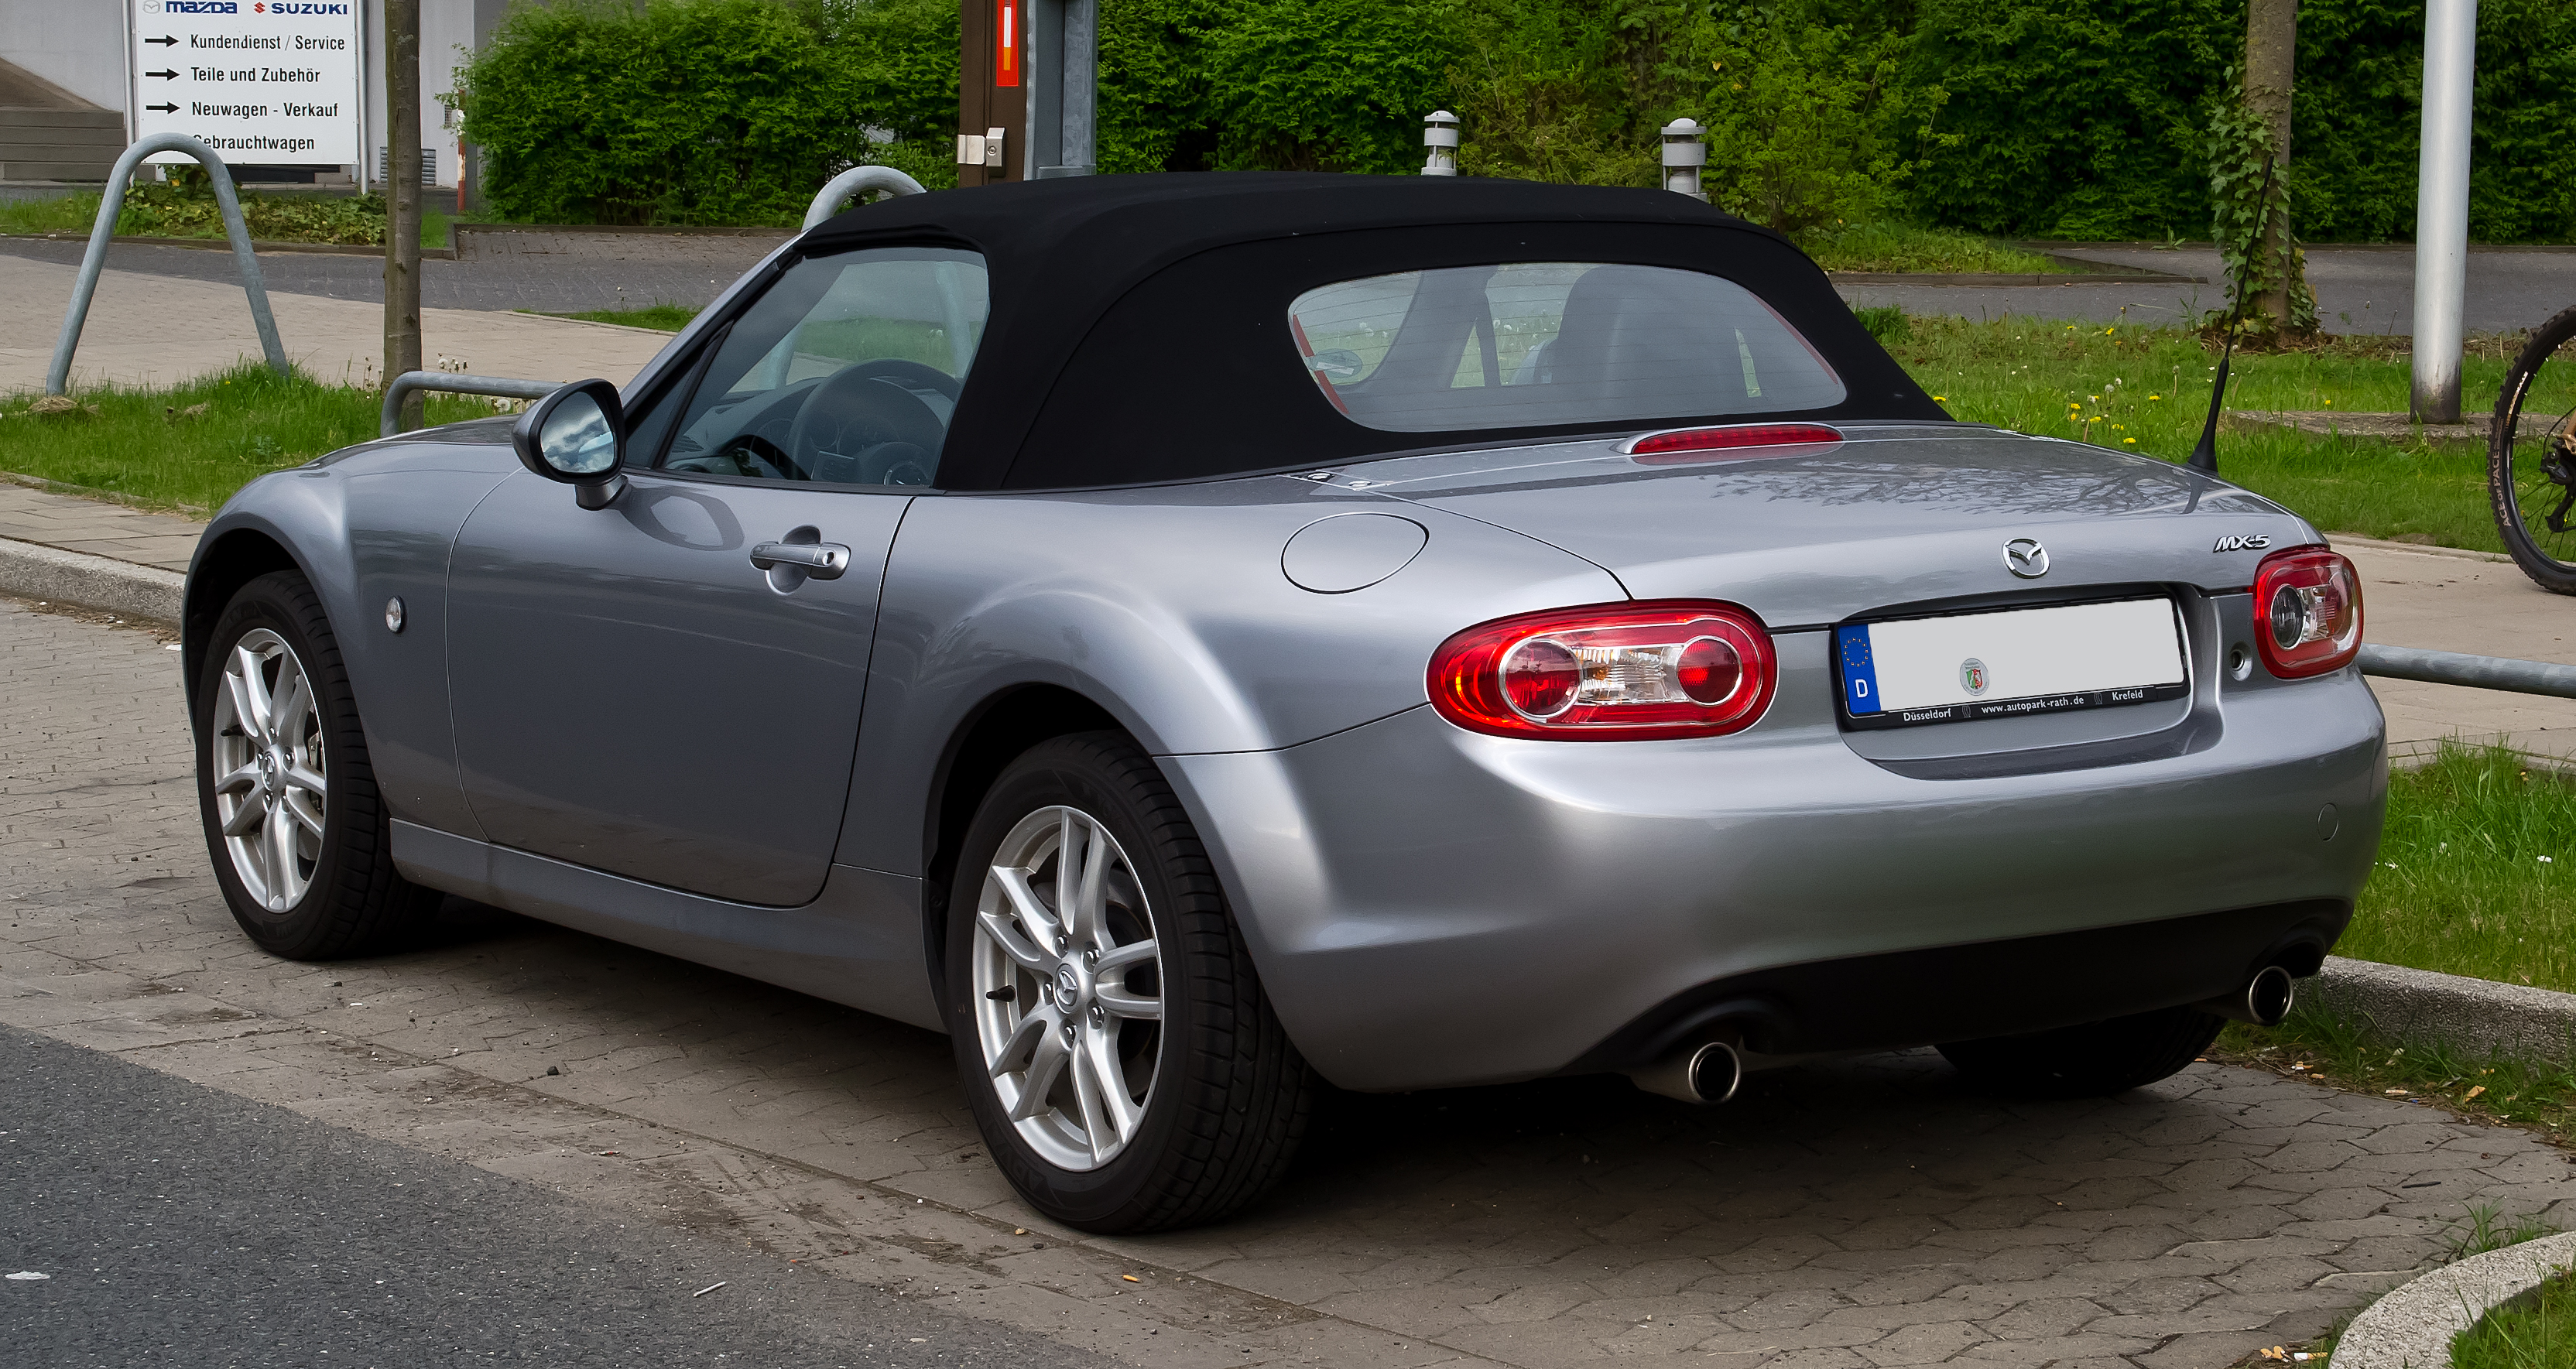 file mazda mx 5 roadster iii facelift heckansicht 1. Black Bedroom Furniture Sets. Home Design Ideas